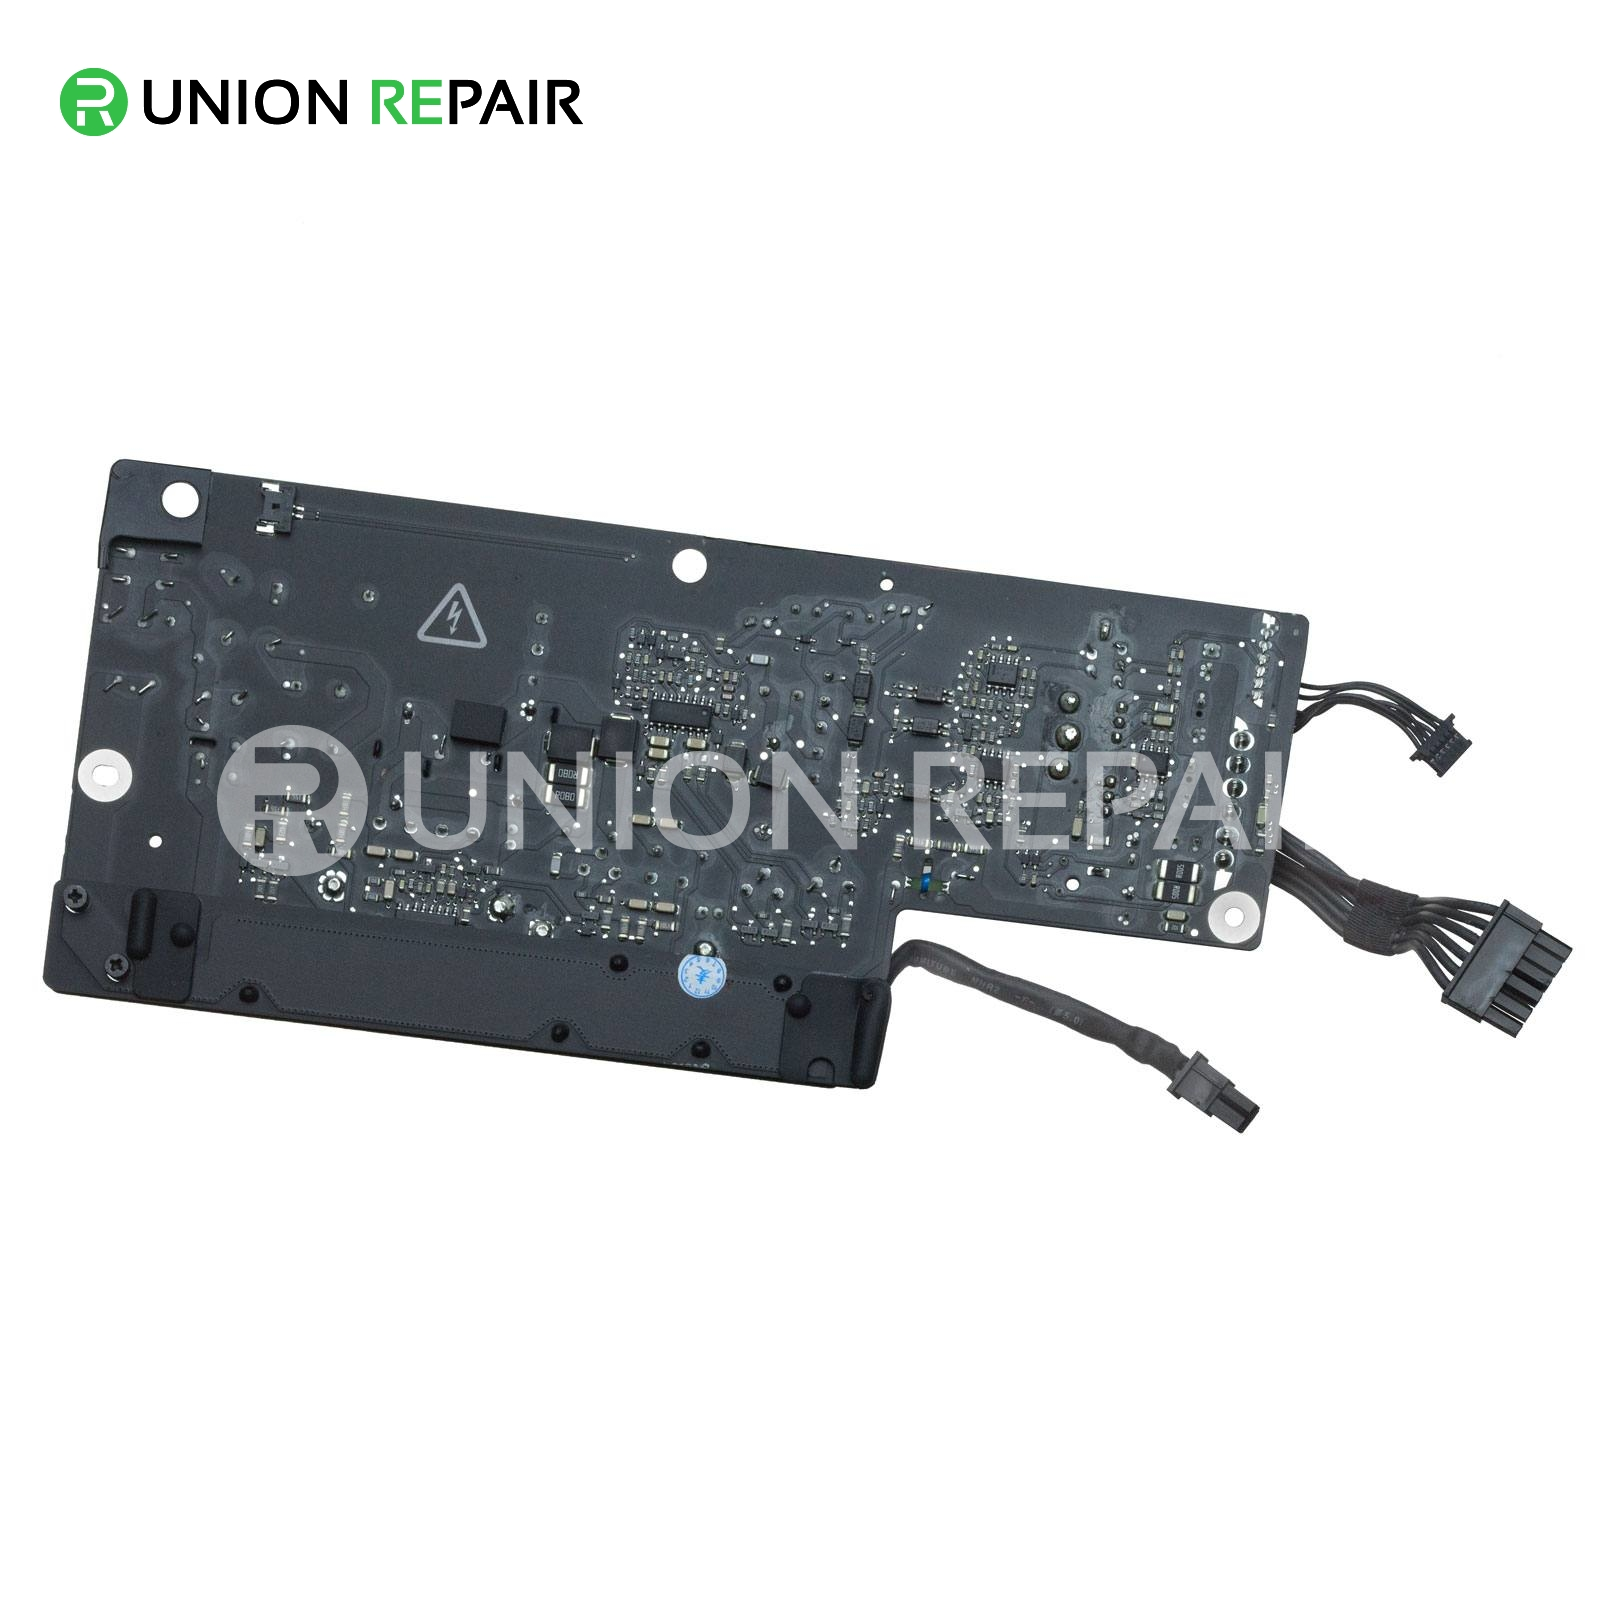 """Power Supply (185W) for iMac 21.5"""" A1418 (Late 2012- Retina 4K Late 2015)"""